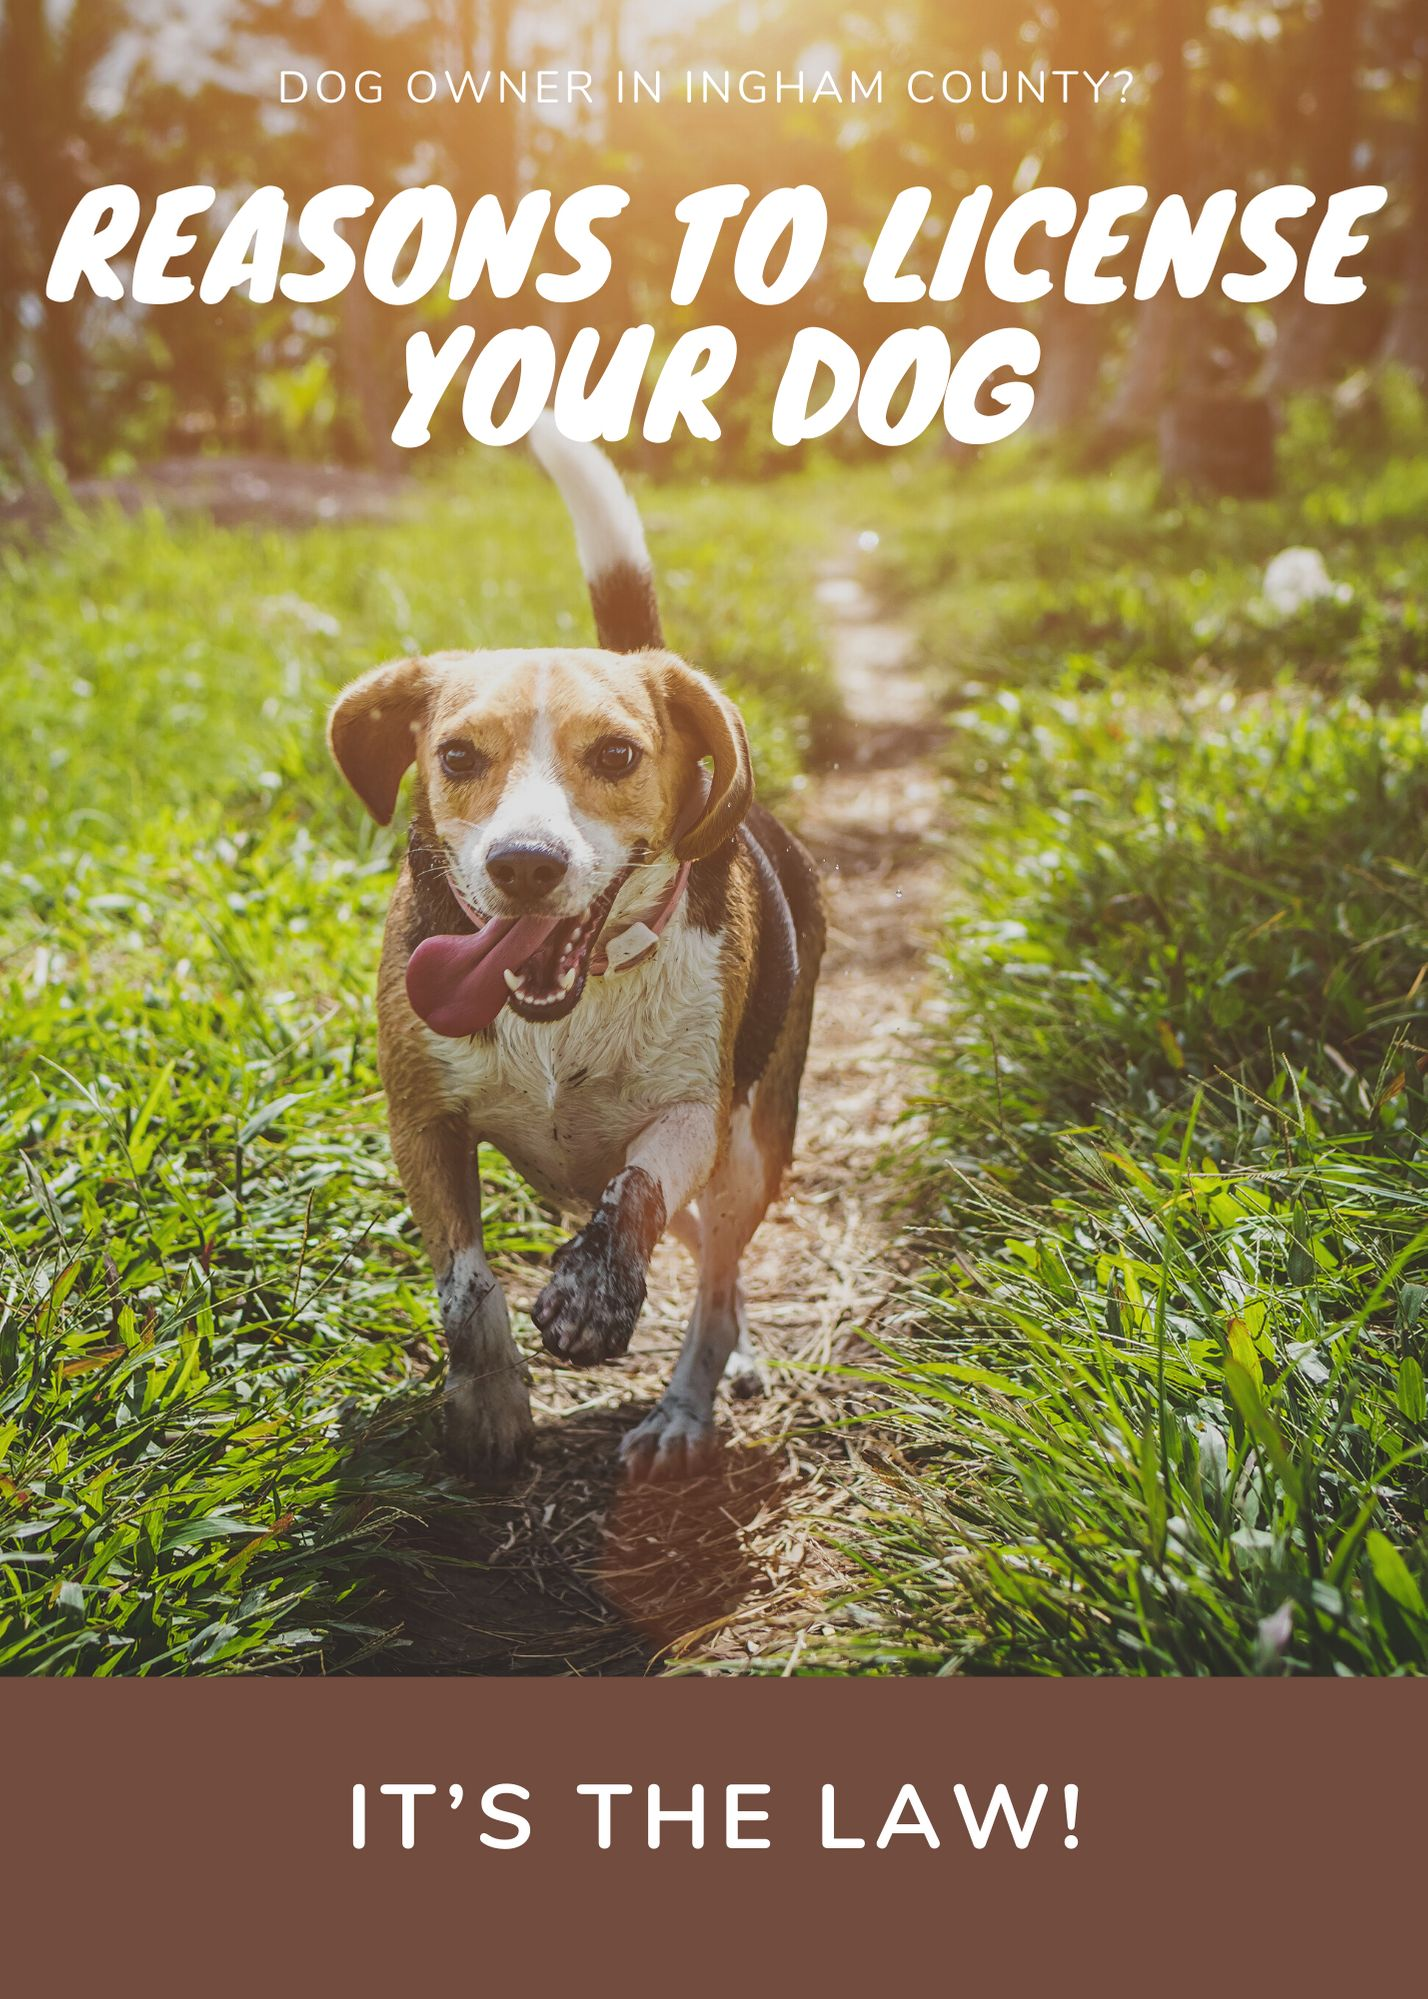 Ingham County Dog License Poster